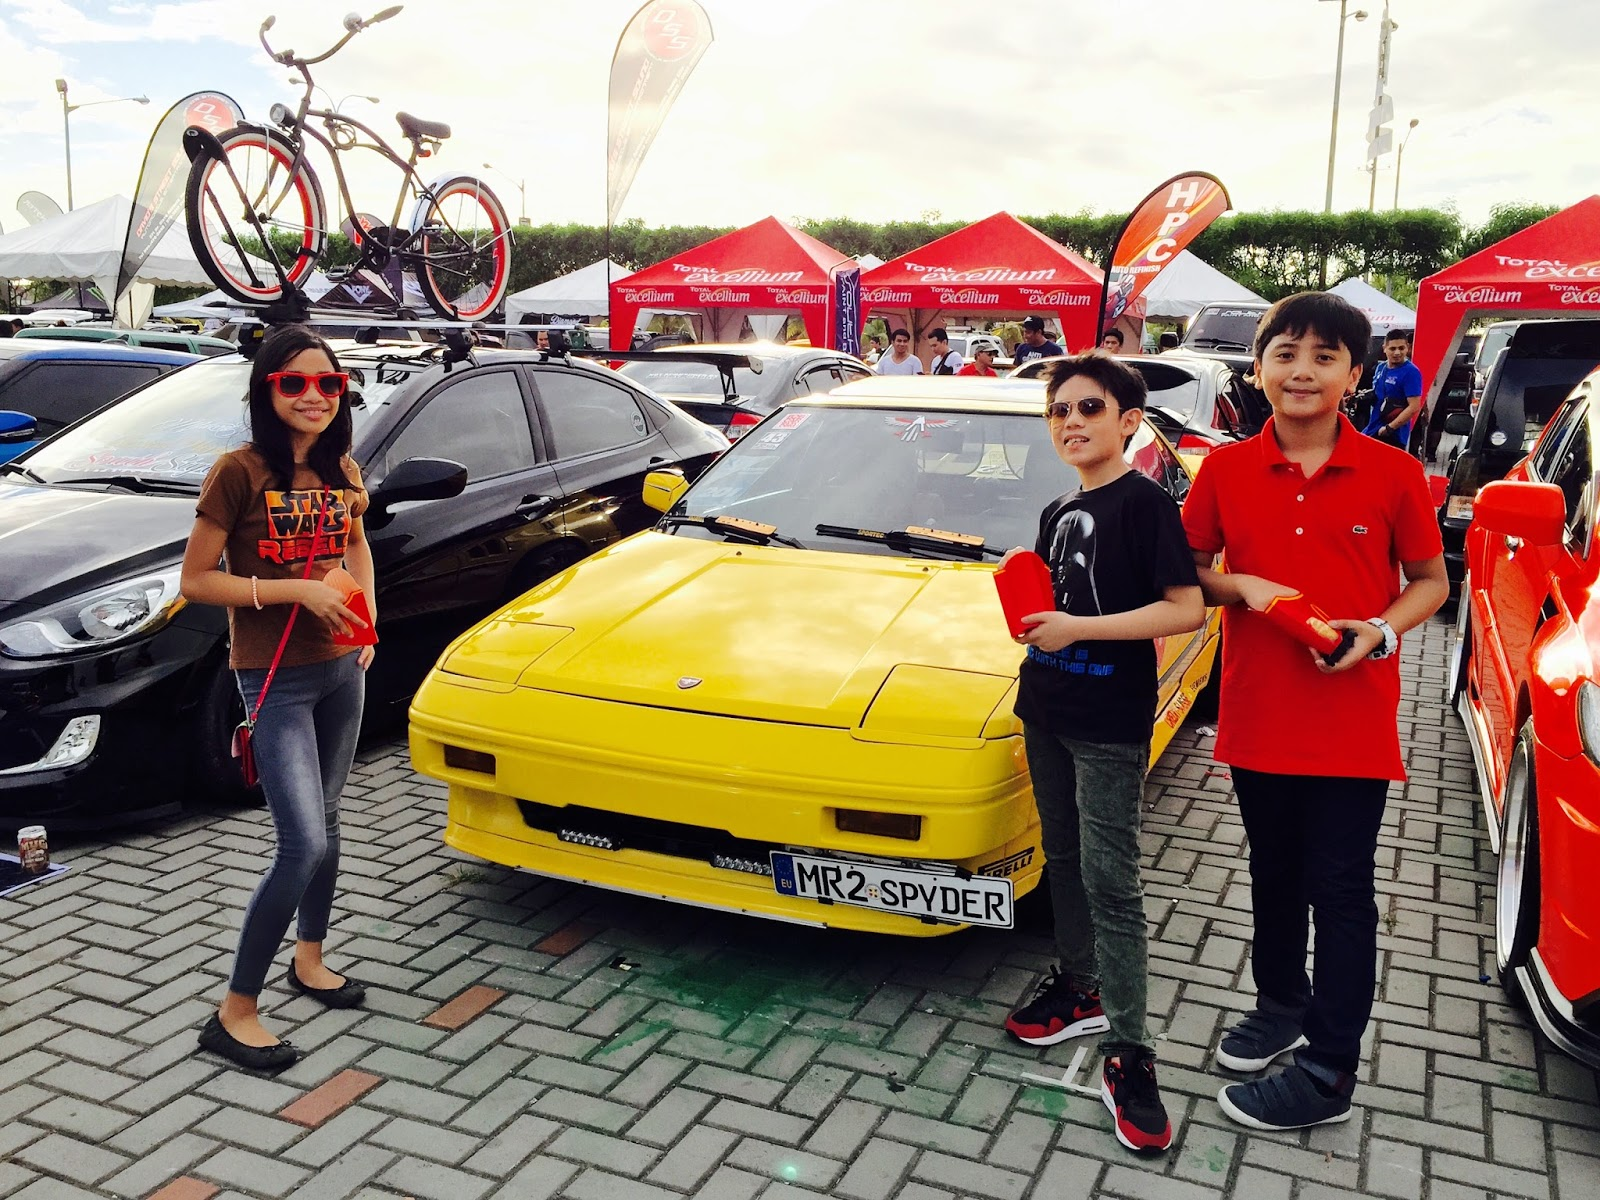 Bumper To Xi Holds Successful Car Show Event At Sm Moa Bettina Heels Bernyce Black Hitam 39 Was Presented By B2bcarshowcom Total Excellium Penserq Multimedia Company Repsol Motor Oils No Fear Apparel Task Us